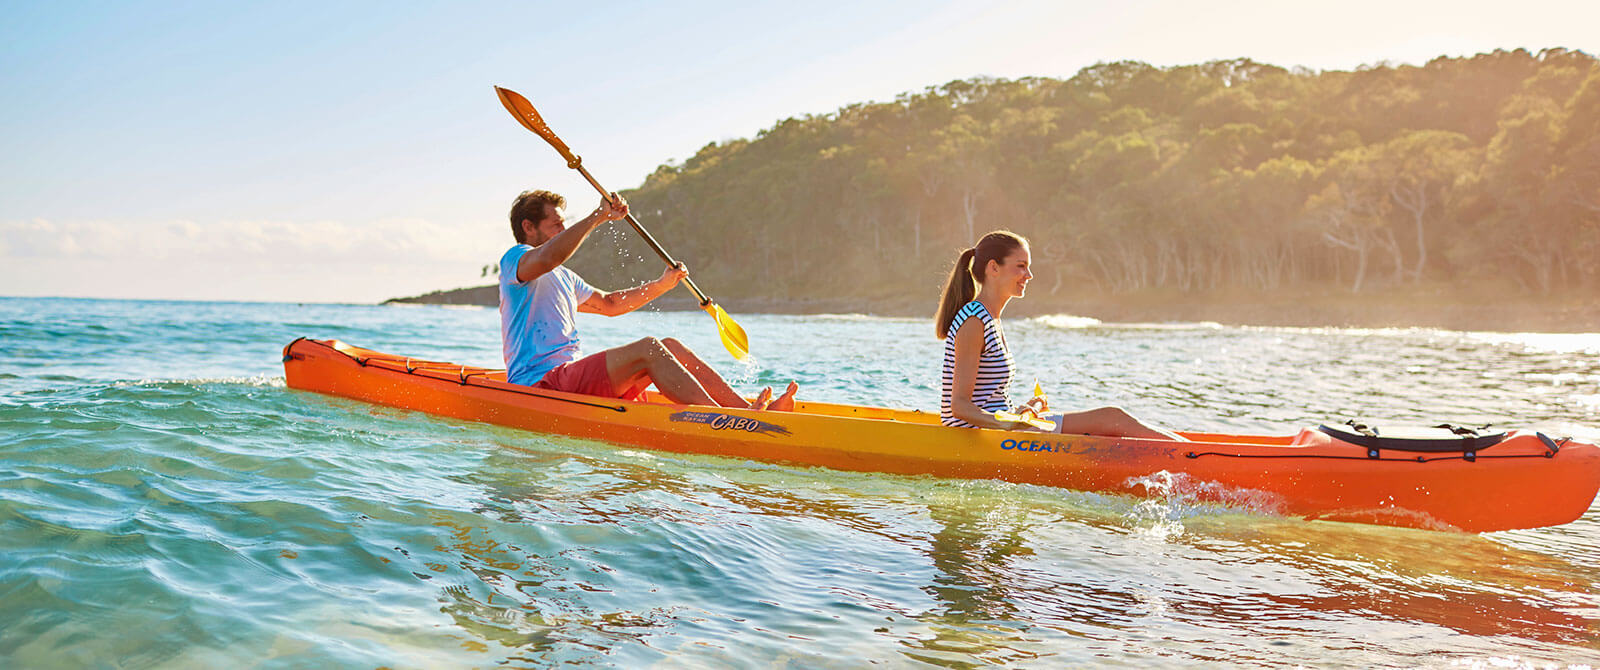 Sea Kayaking in Noosa - Australia Getaway: Sunshine Coast and Kangaroo Island